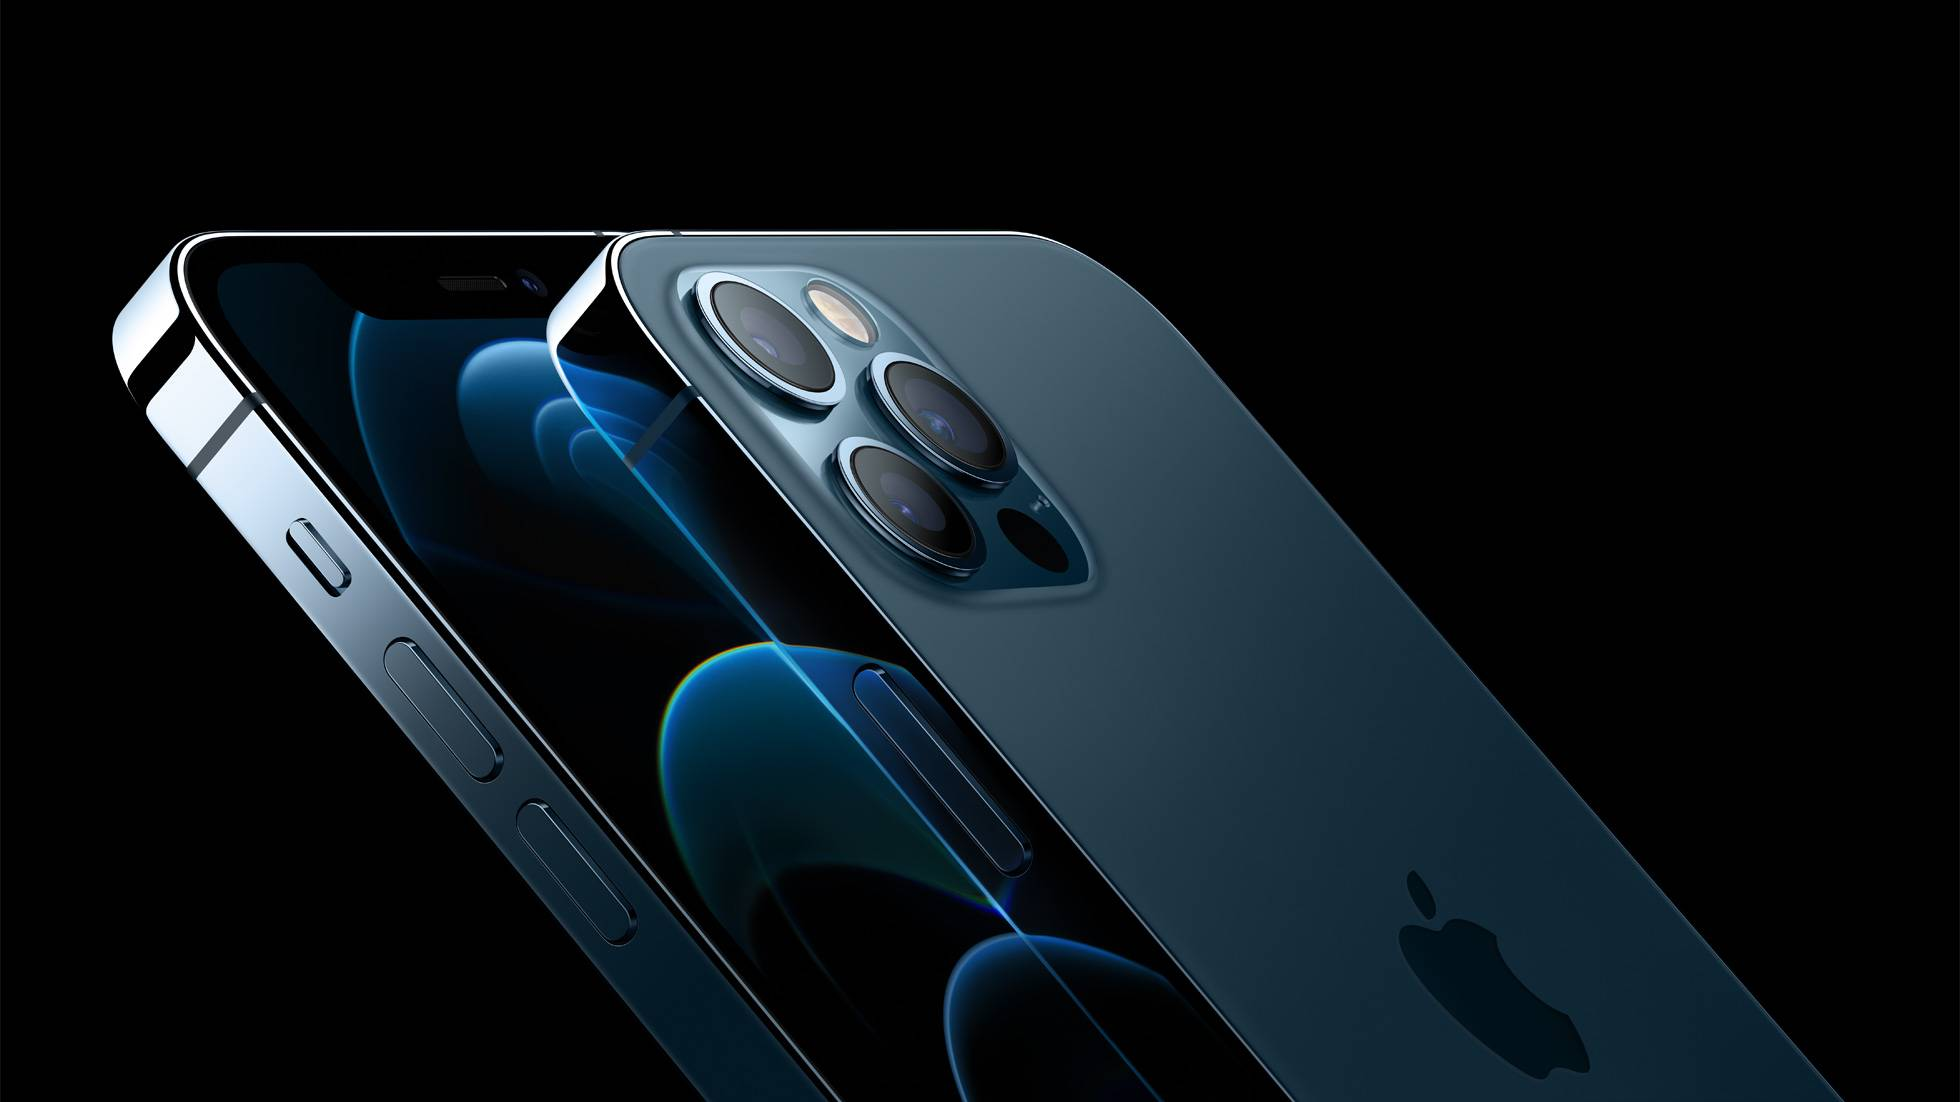 [Exclusive] Apple iPhone 13 series to get launched on September 2021